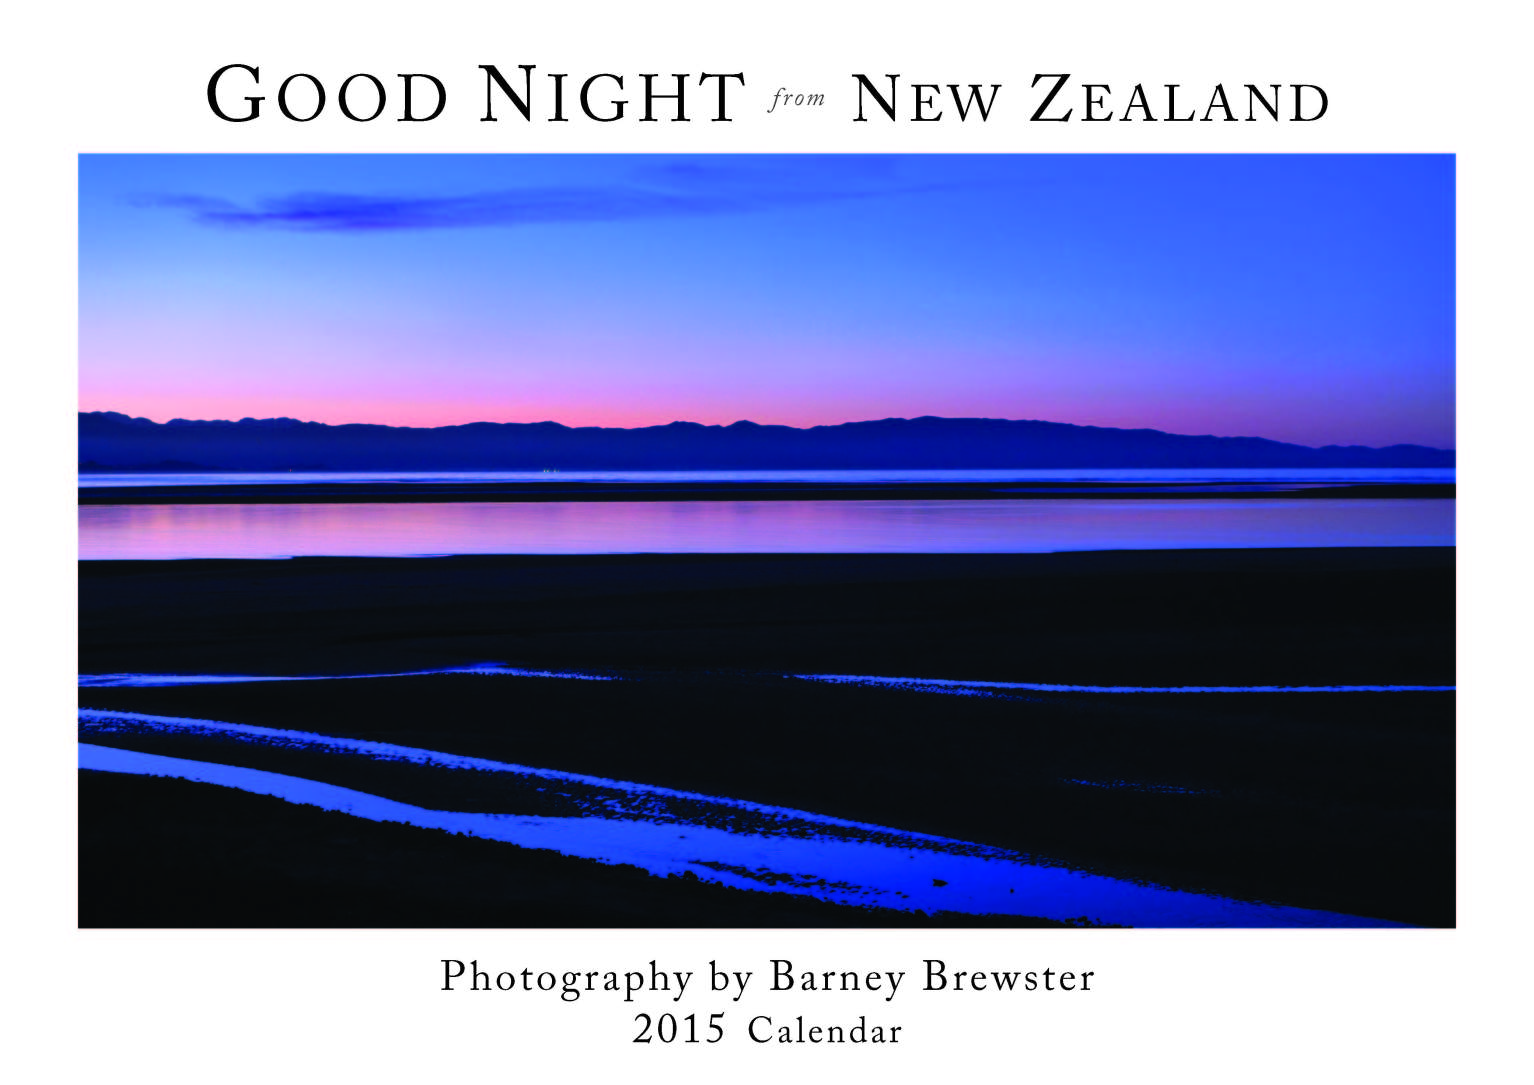 Good Night from New Zealand 2015 Calendar